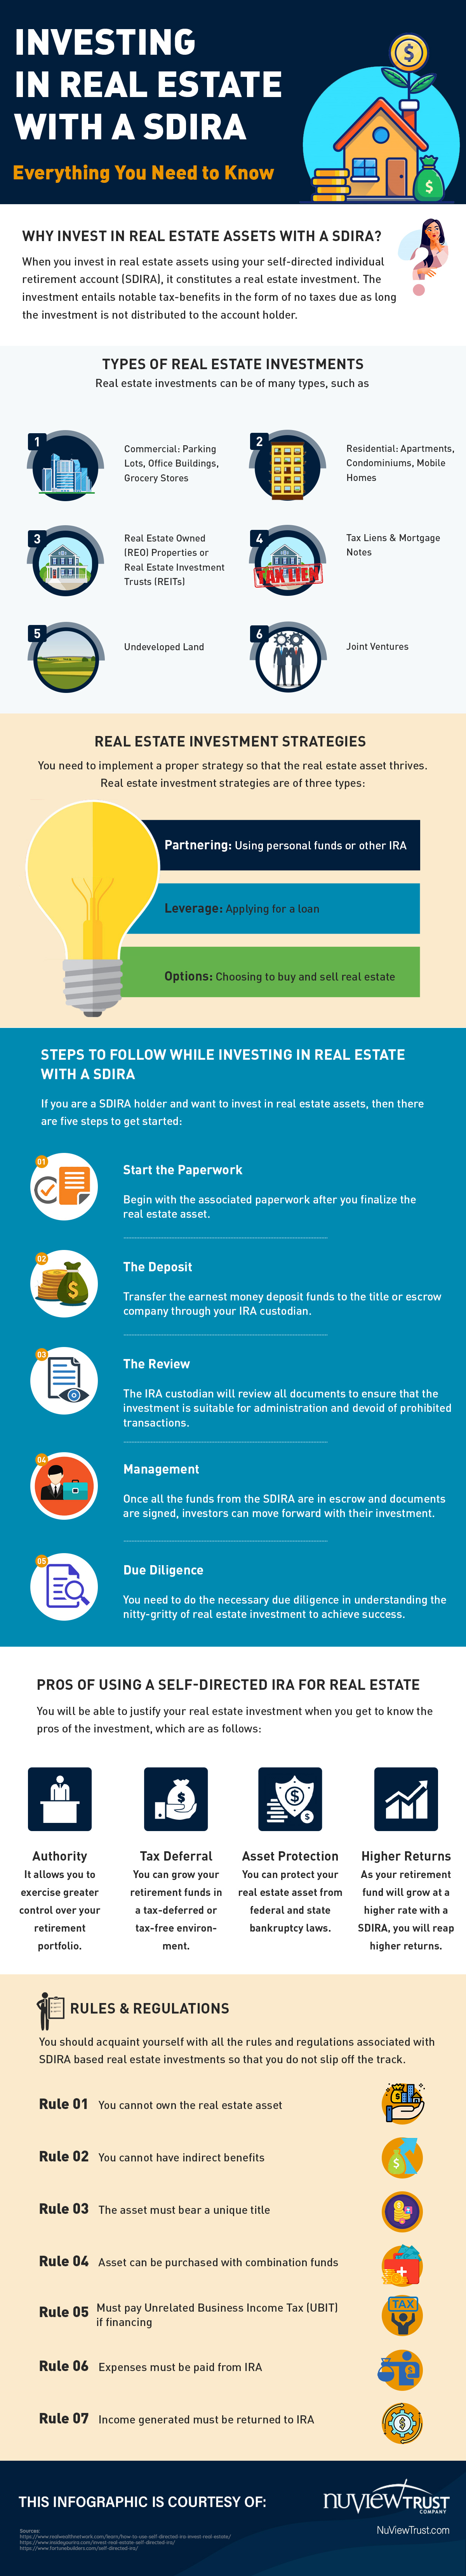 Investing in Real Estate with SDIRA Infographic